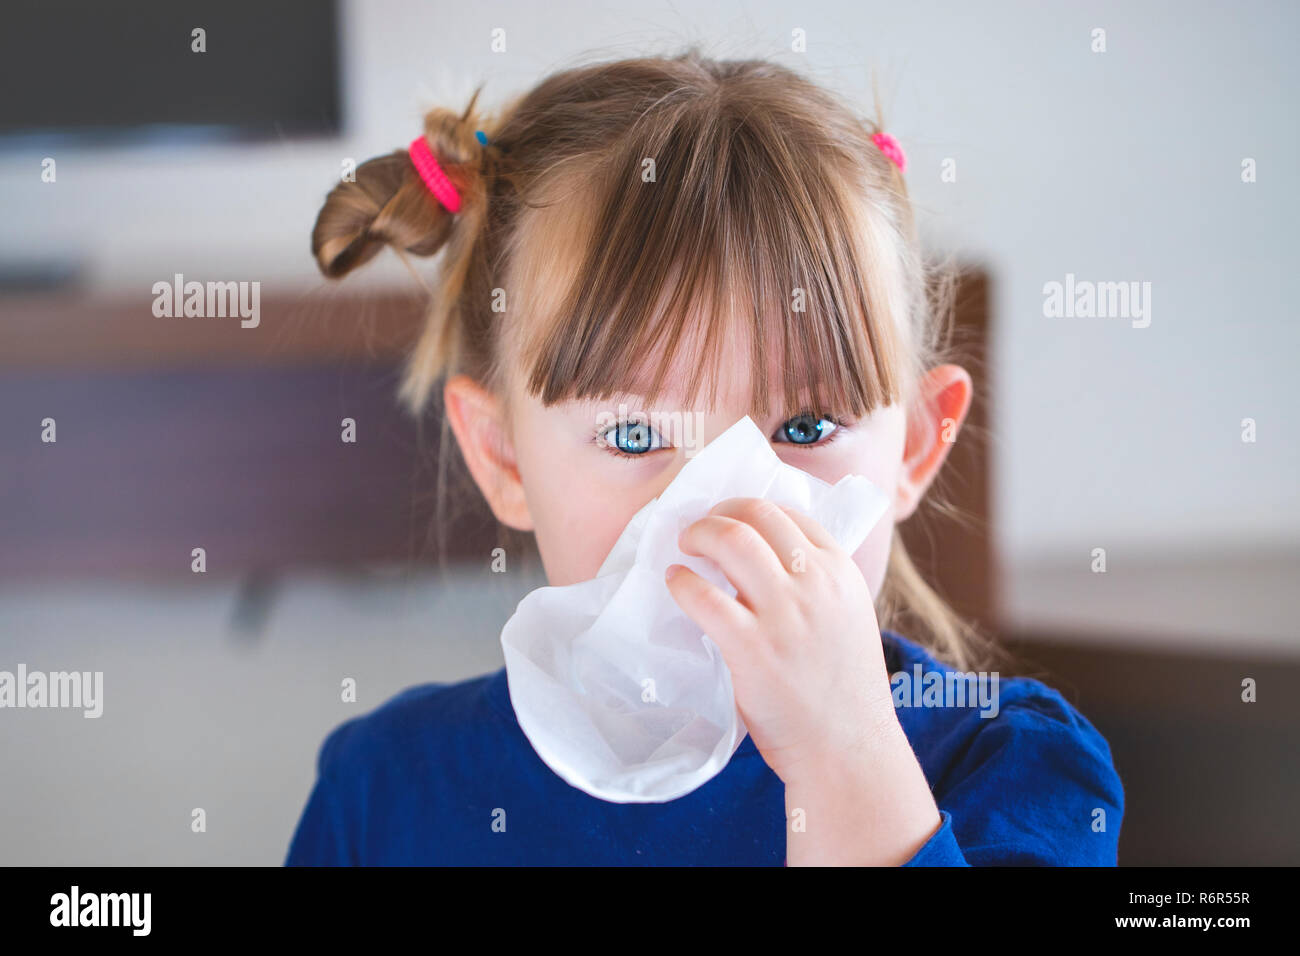 little girl blowing her nose into a handkerchief. - Stock Image